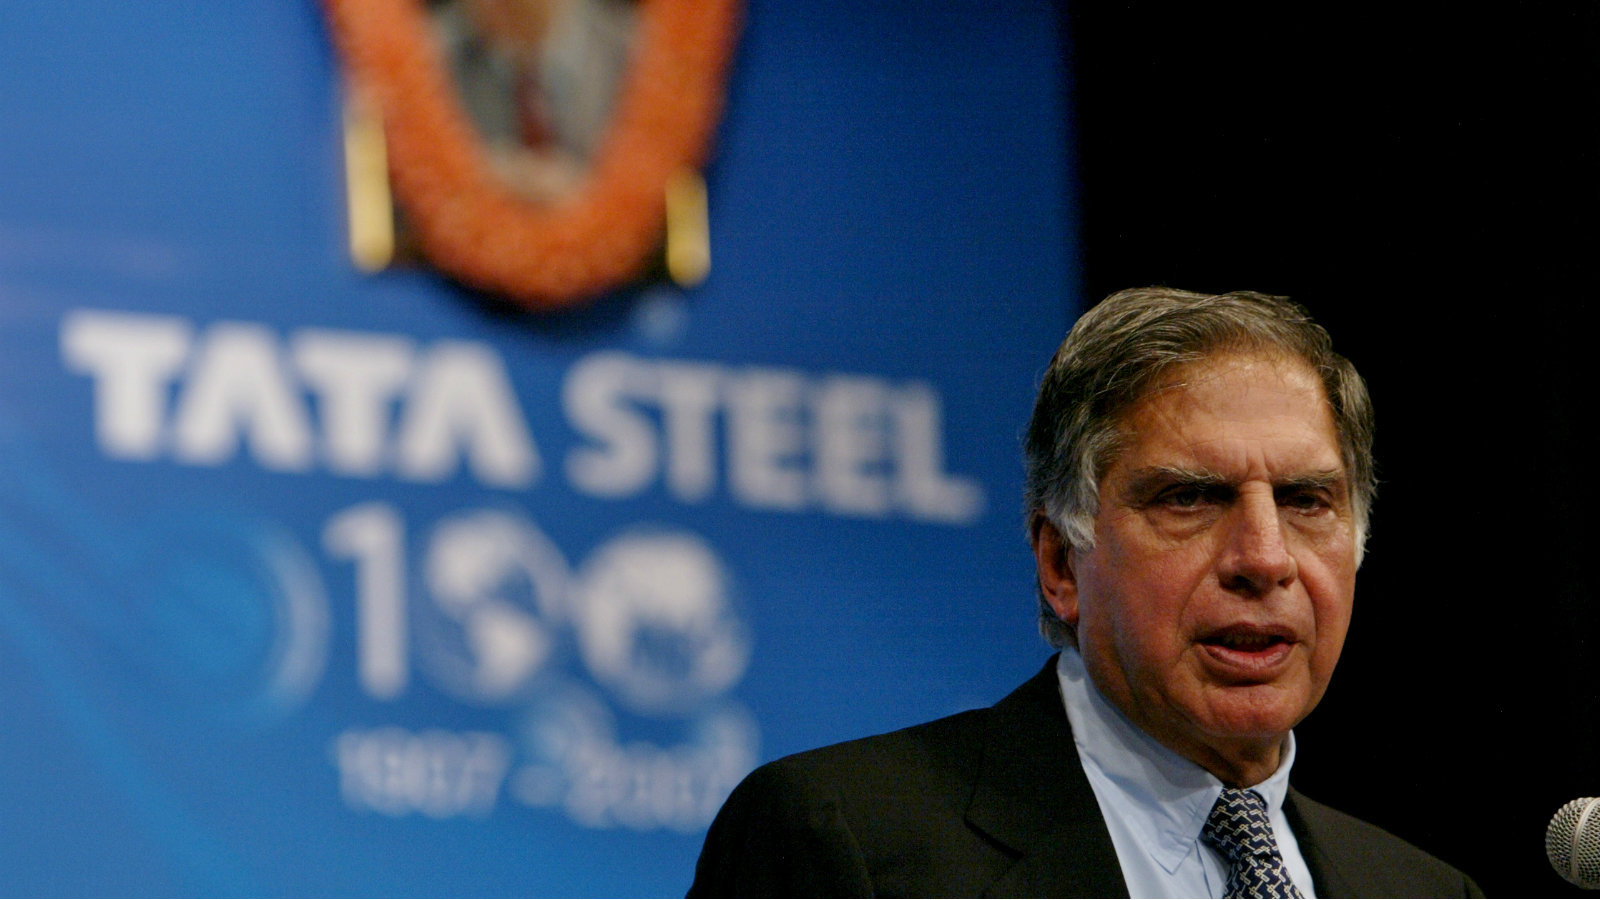 Tata Steel Chairman, Ratan Tata, speaks during the 100th Annual General Meeting of Tata Steel in Mumbai, India, Wednesday, Aug. 29, 2007. Tata Steel, the world's sixth largest steel maker, reported an over six-fold leap in its consolidated profit after tax (PAT) at Rupees 6,388 crore (US $1.55 Billion) in the first quarter this fiscal on acquisition of Anglo-Dutch steel maker Corus Group Plc early this year.